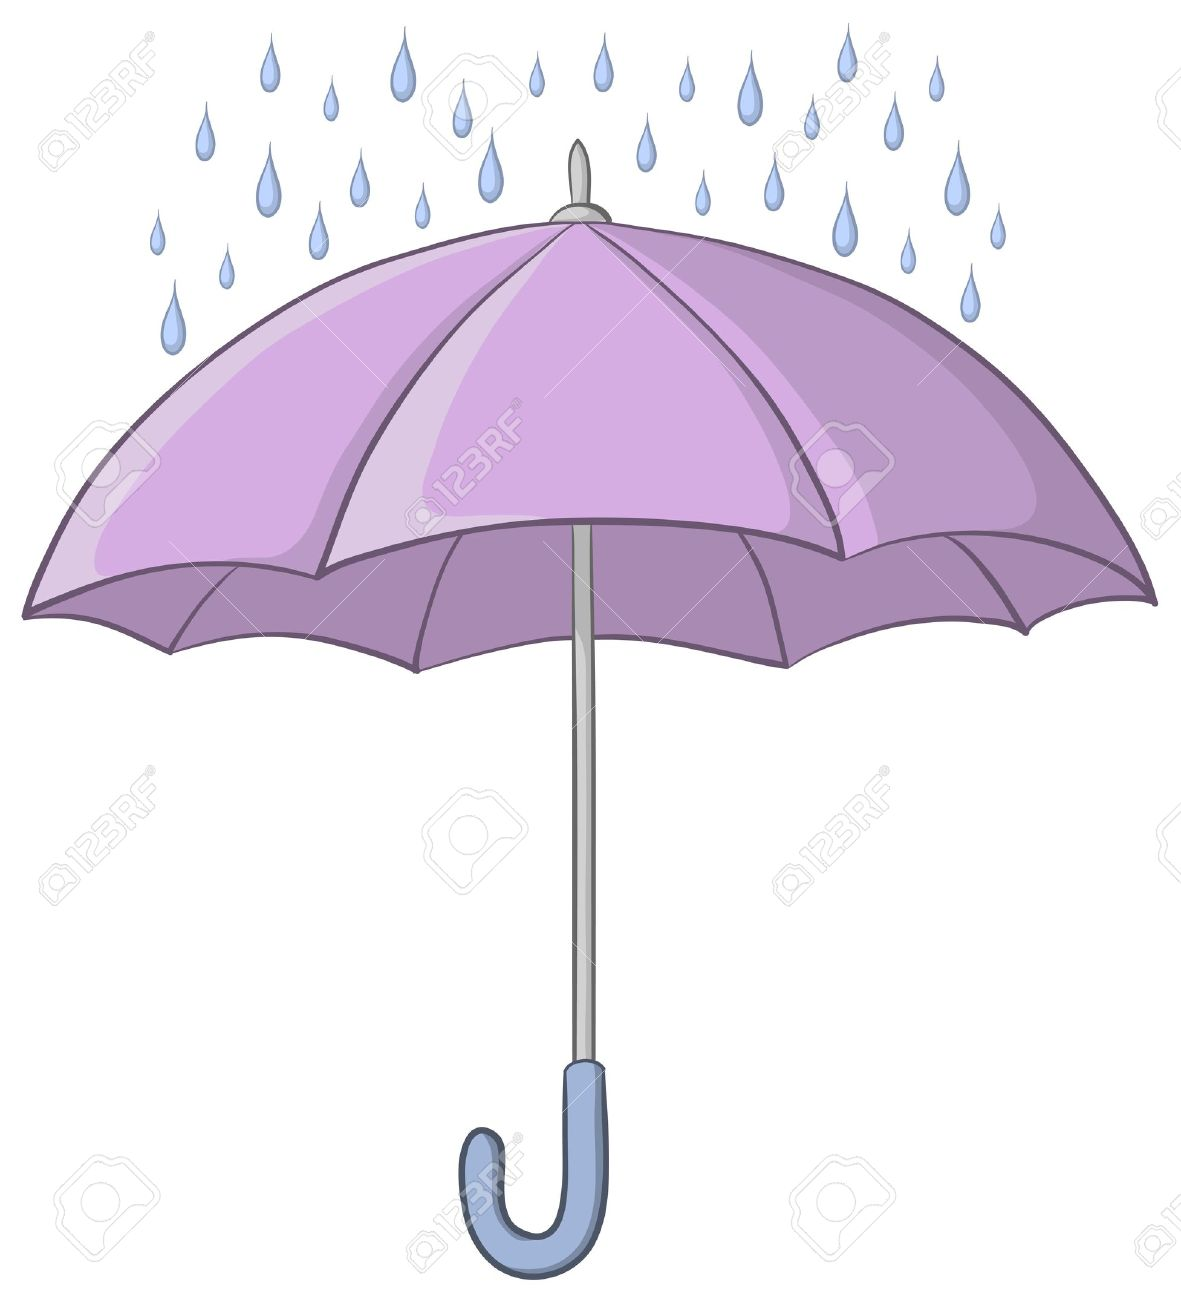 rainy season stock photos royalty free rainy season images and